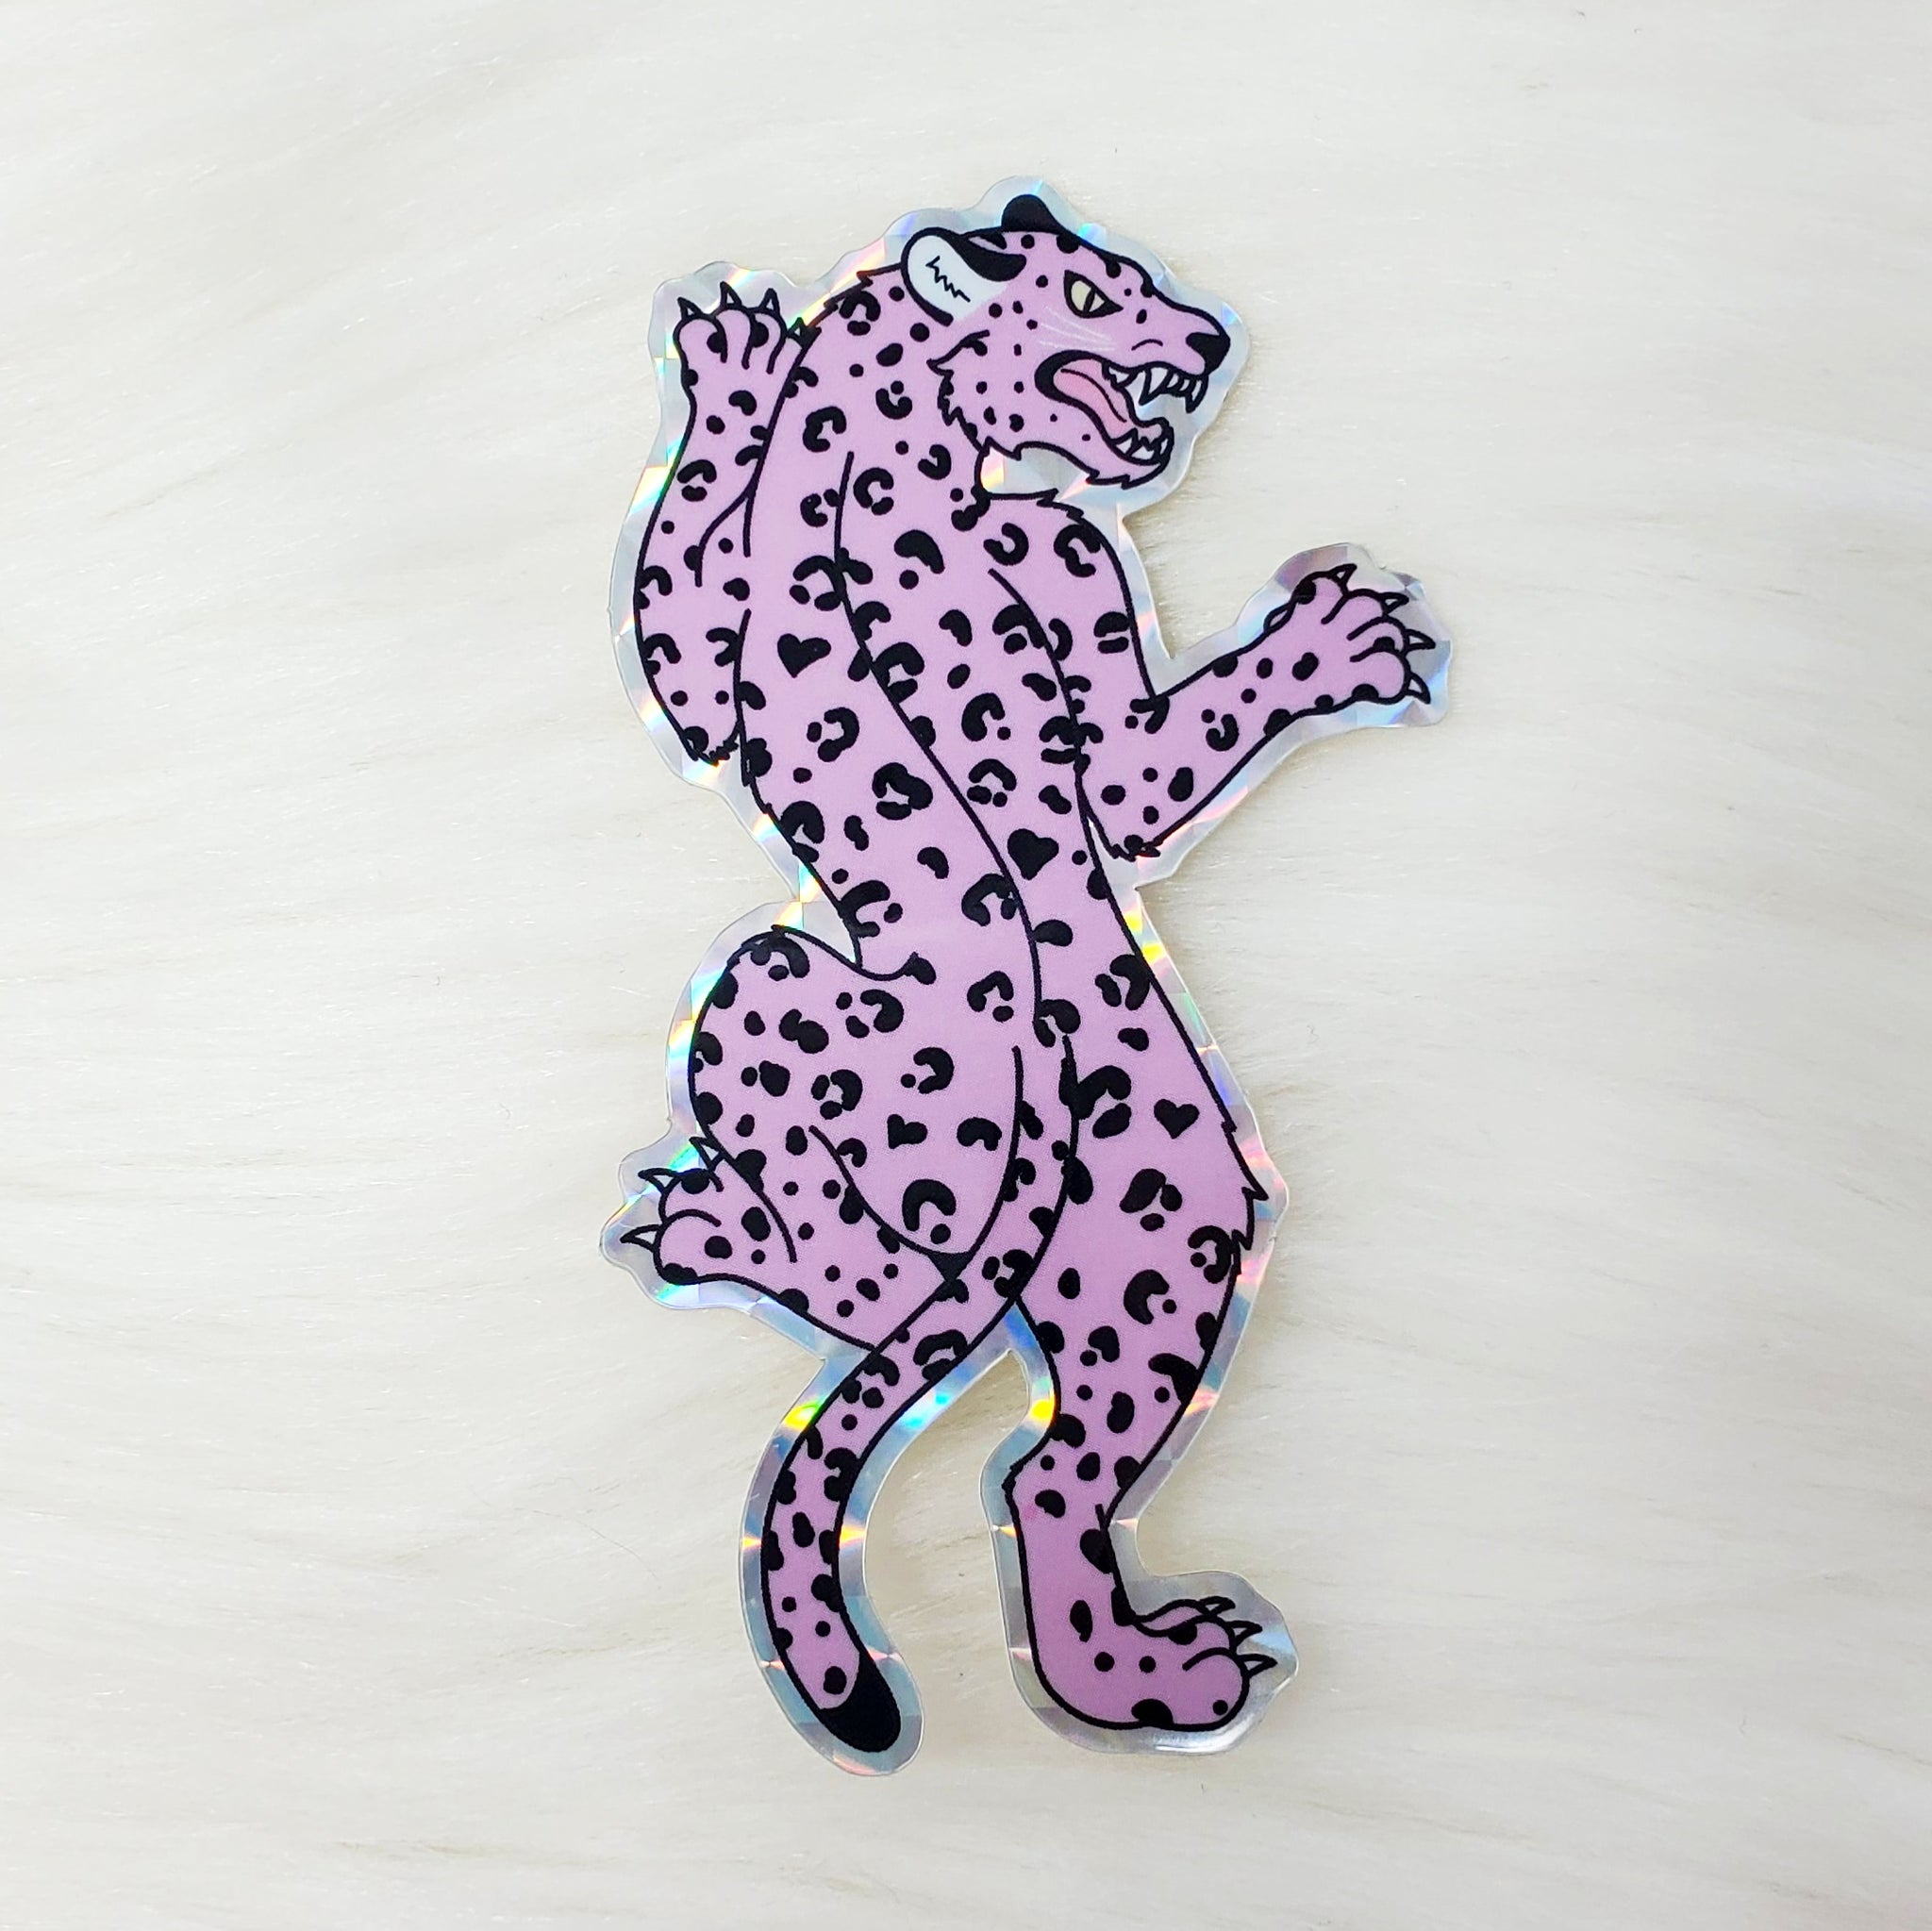 ♡ HOLOGRAPHIC Leopard Sticker ♡